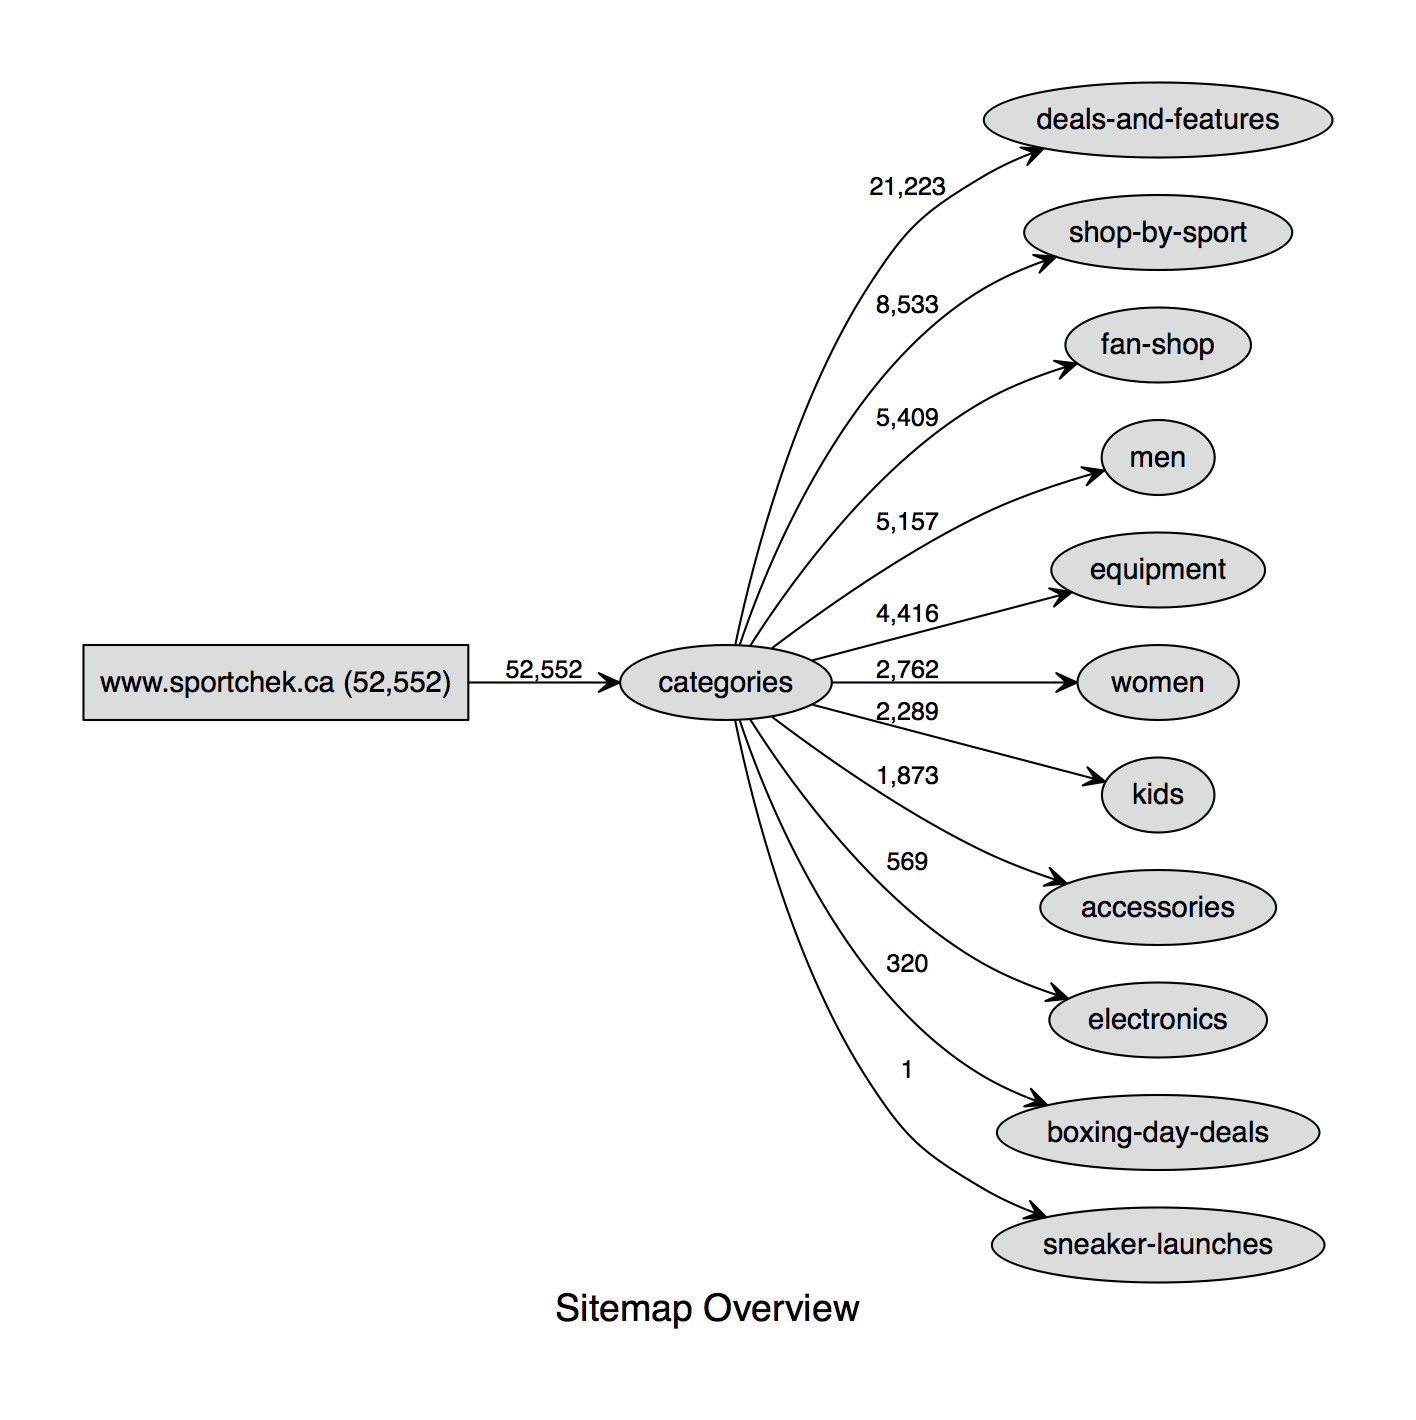 XML sitemap graph visualization